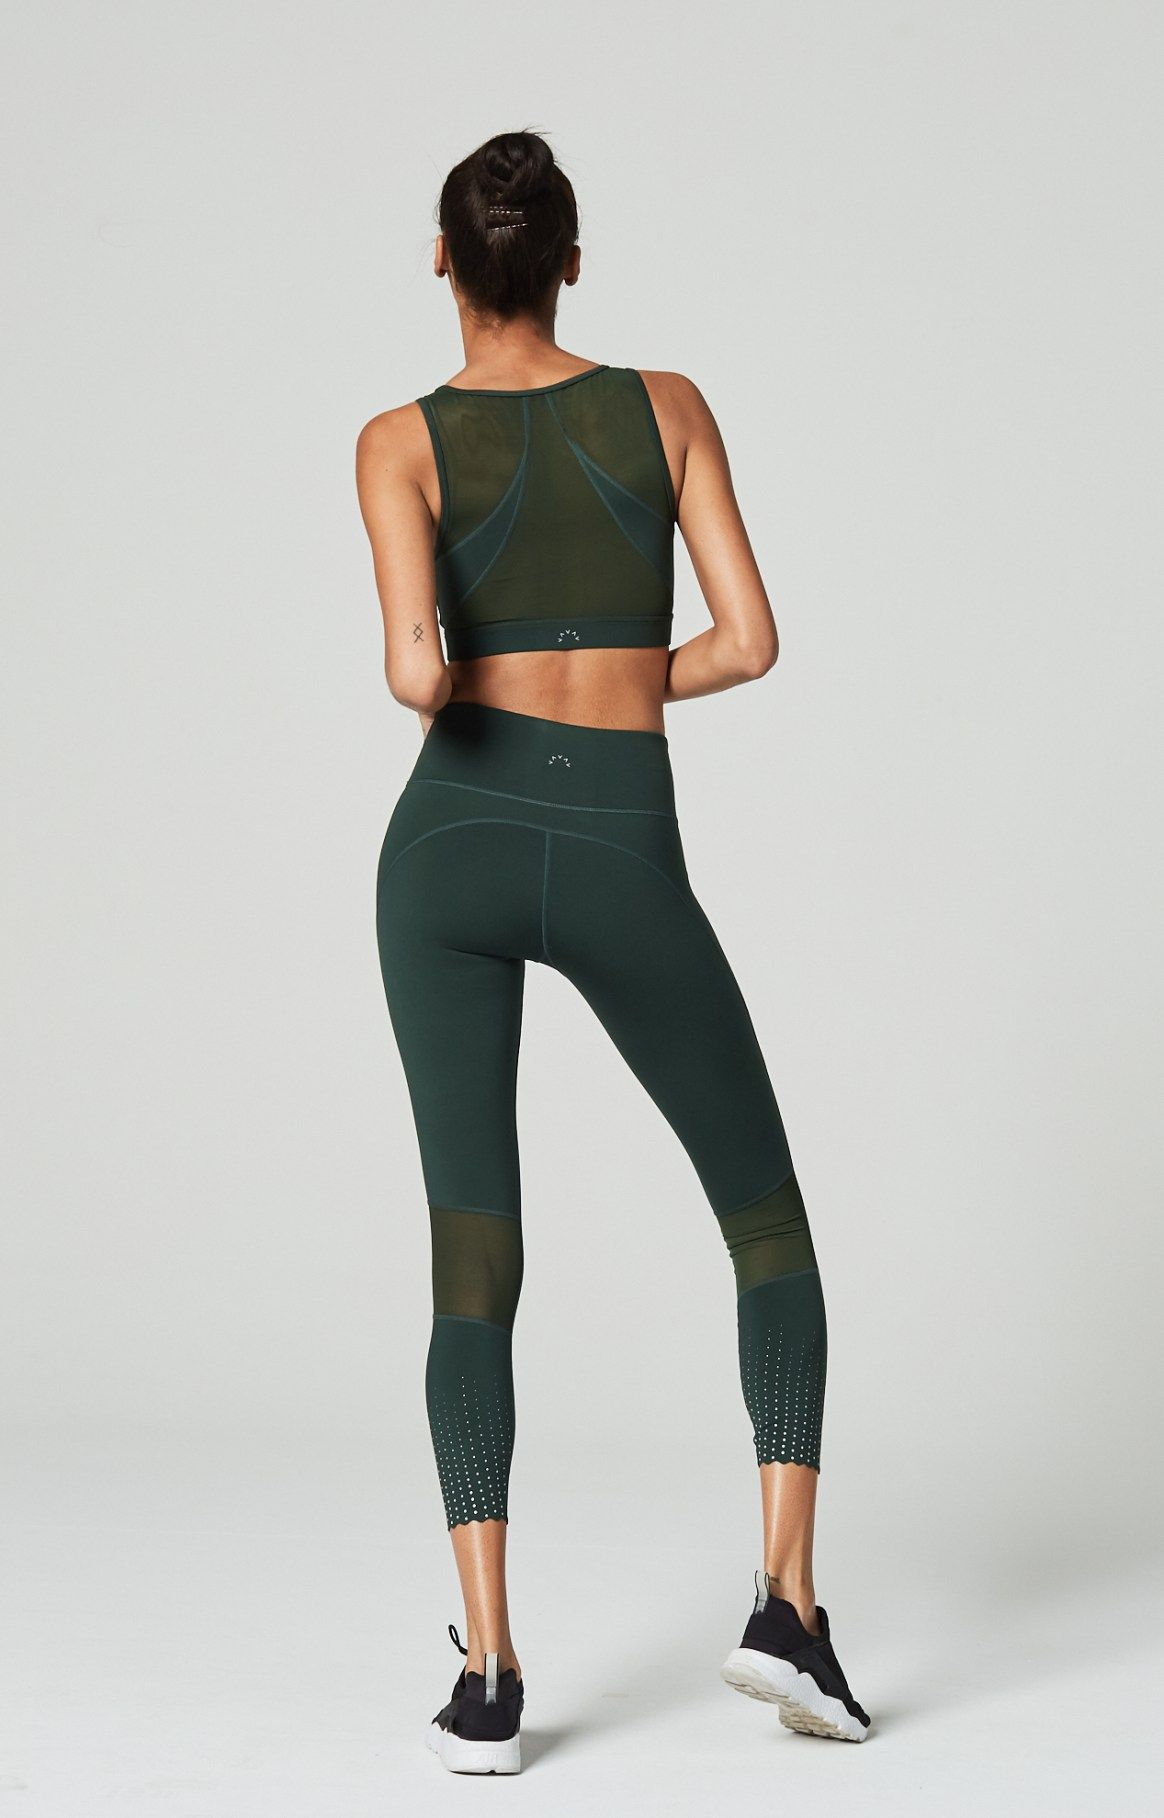 8cb6eed7f27 Varley Green Russell Sports Bra available at Fashercise.com